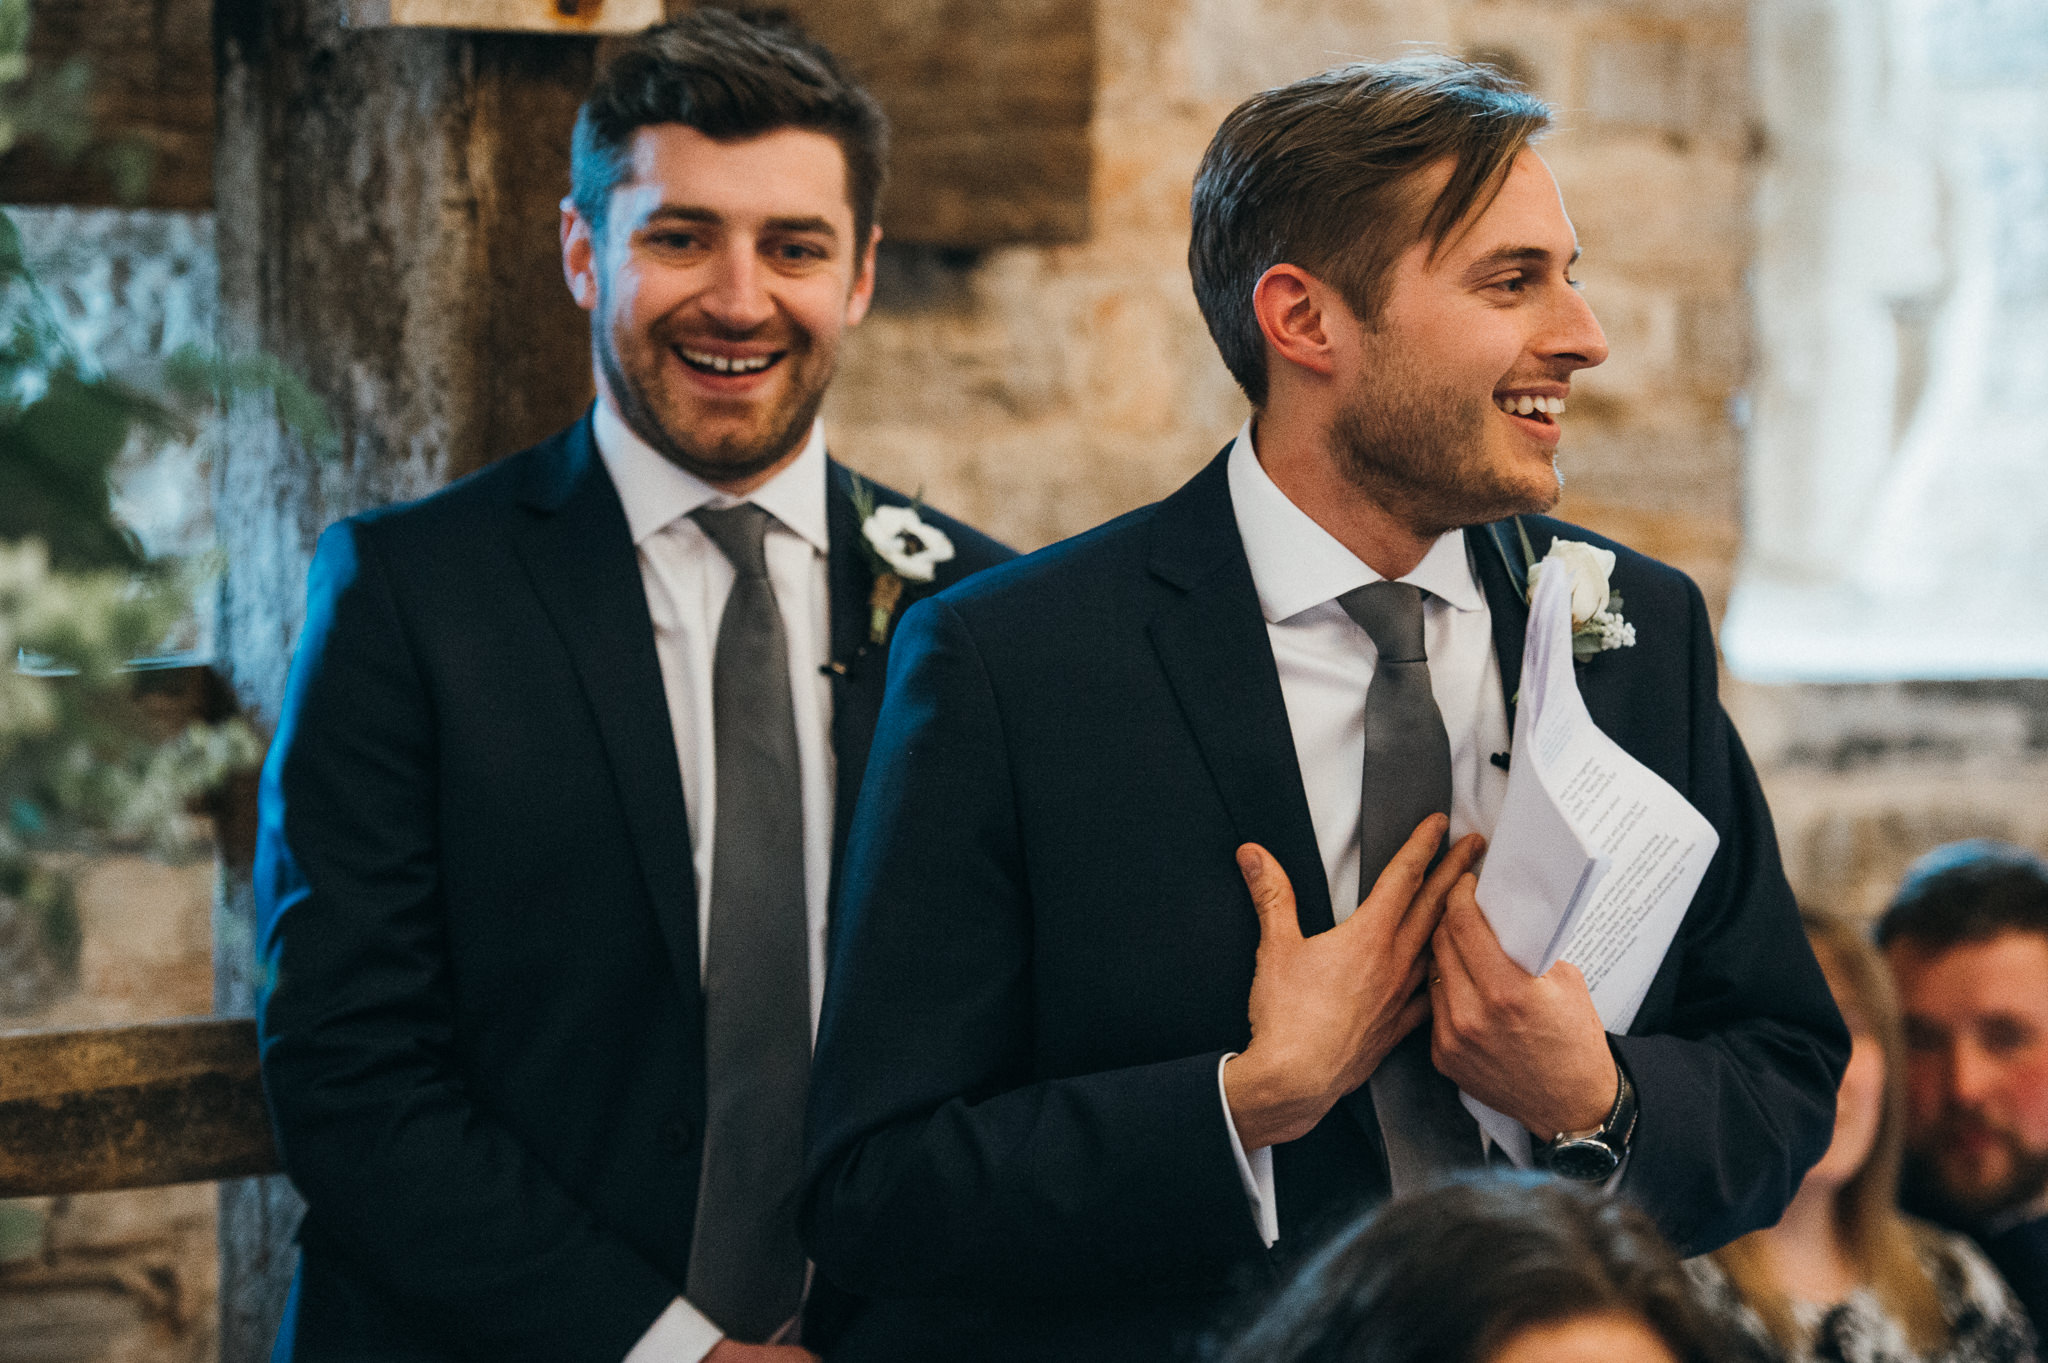 best men speech at wedding at the almonry barn